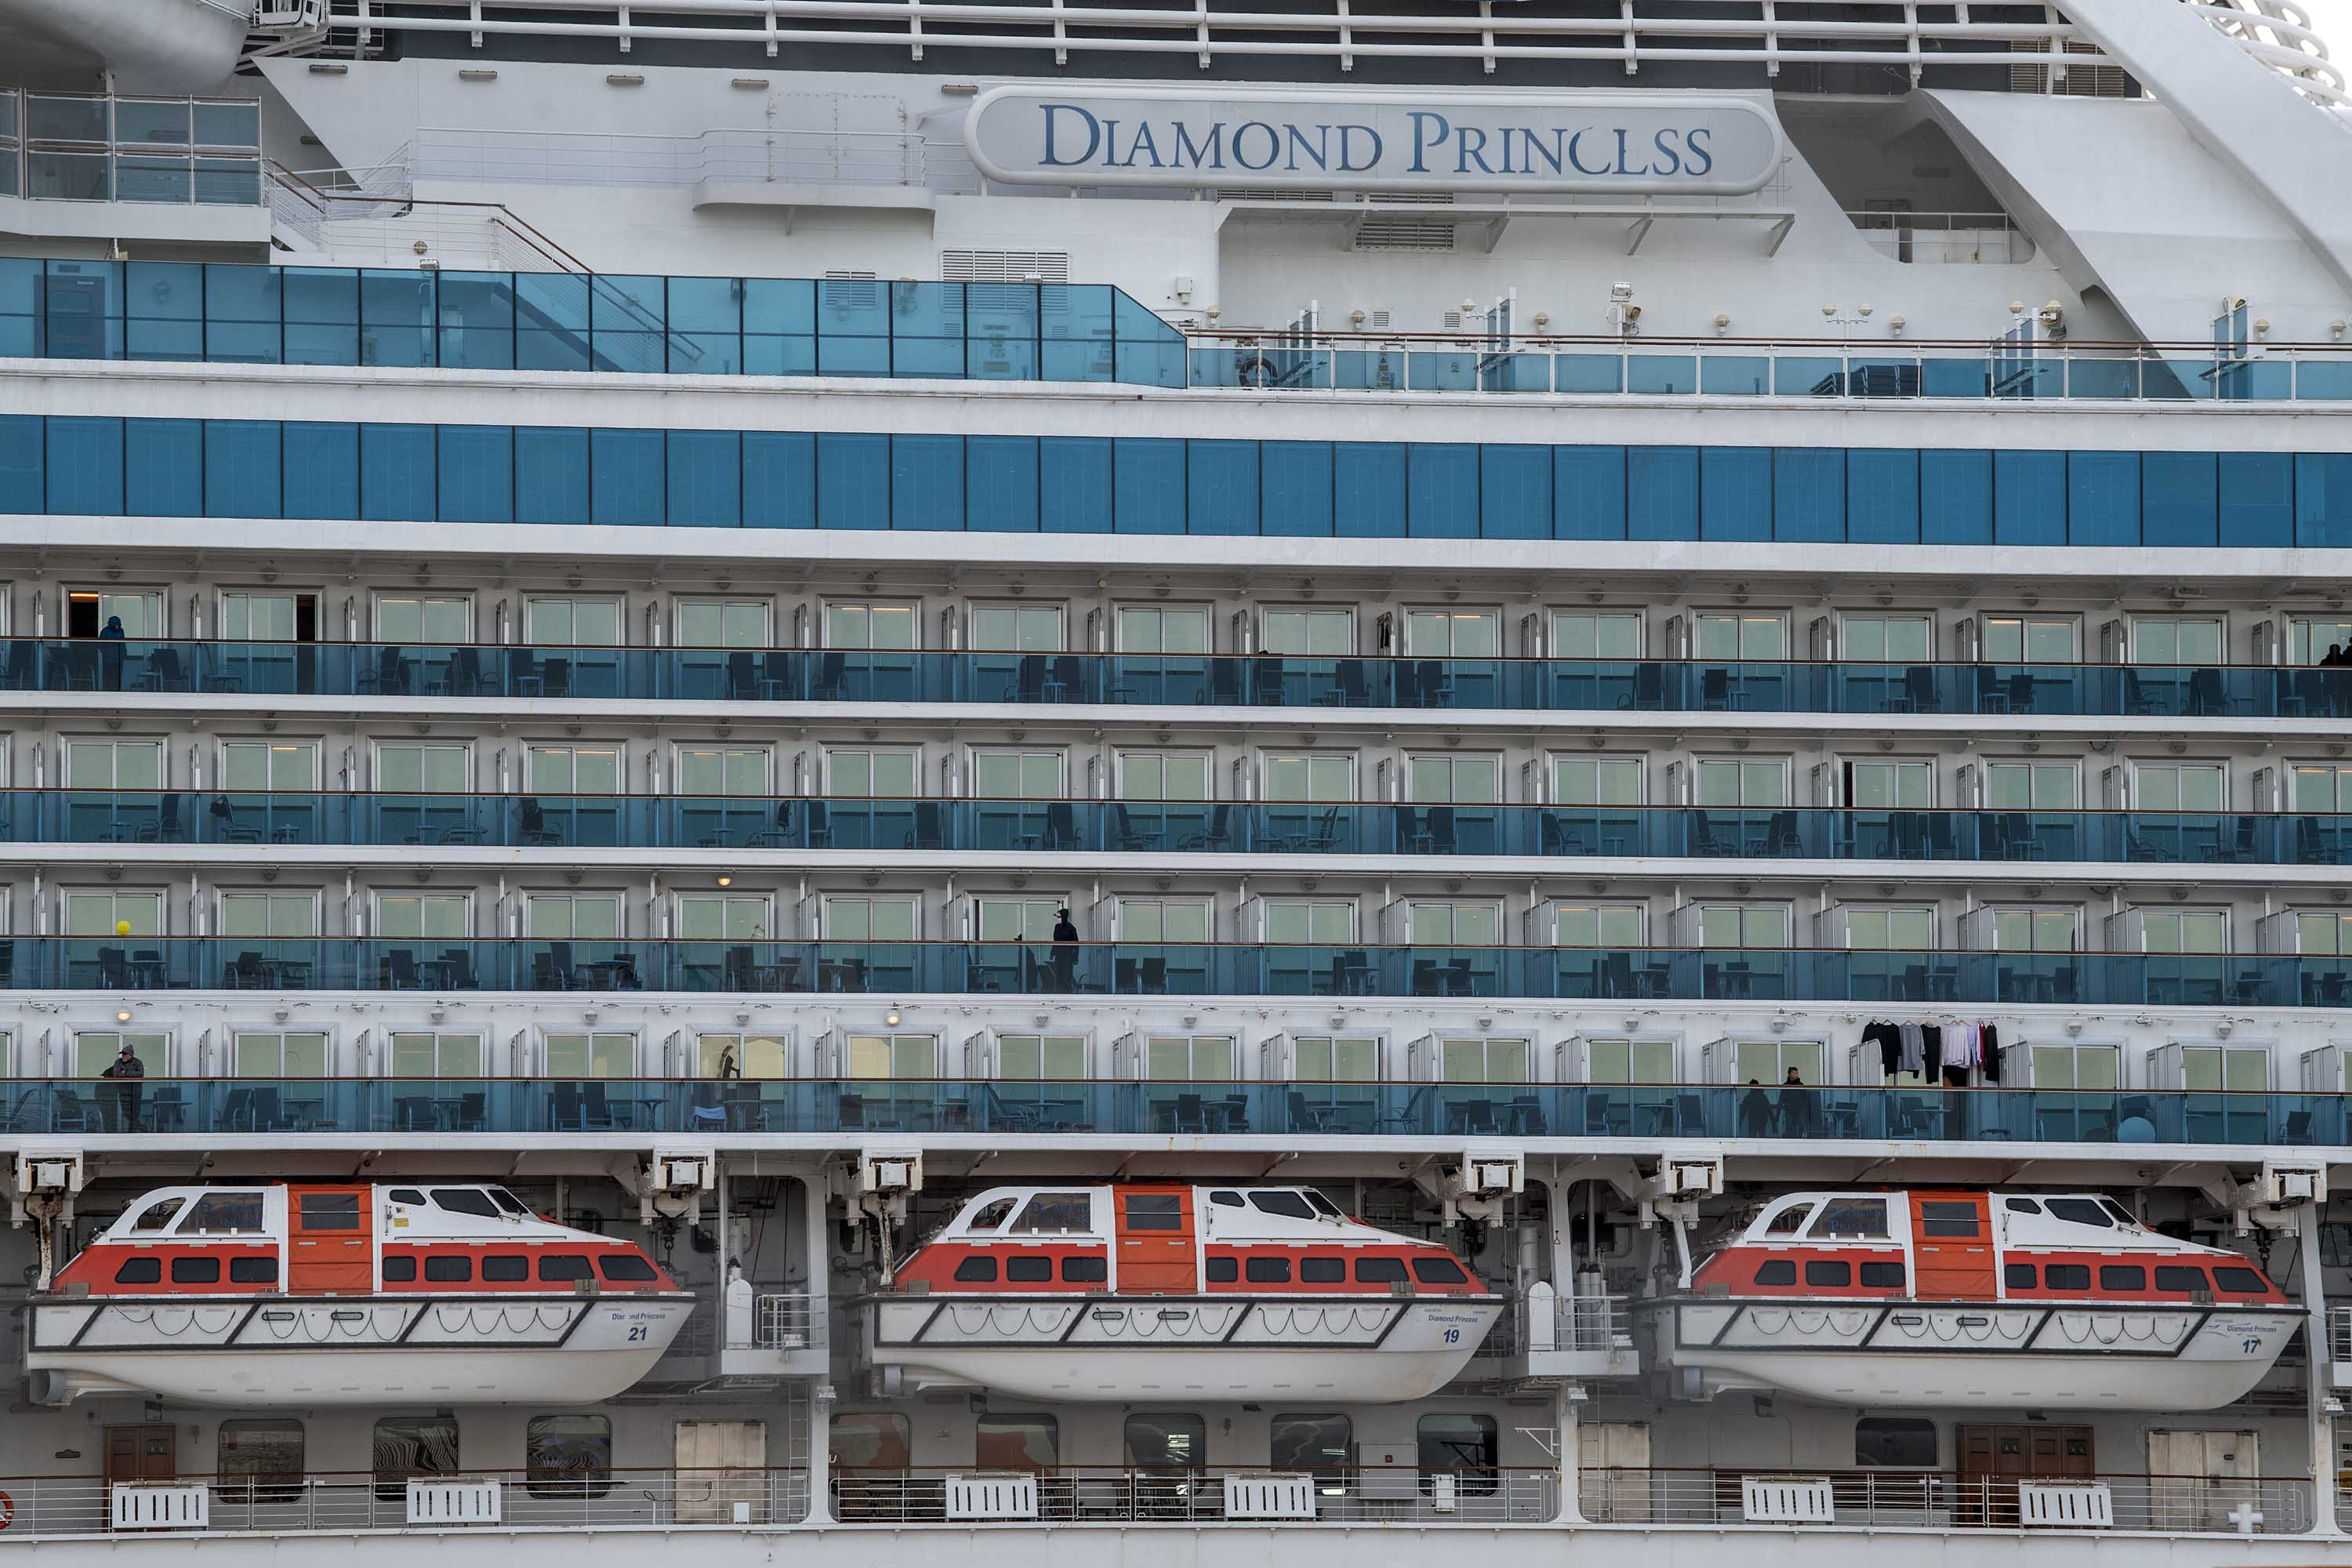 People stand on balconies aboard the Diamond Princess cruise ship docked at Daikoku Pier in Yokohama, Japan on Friday.